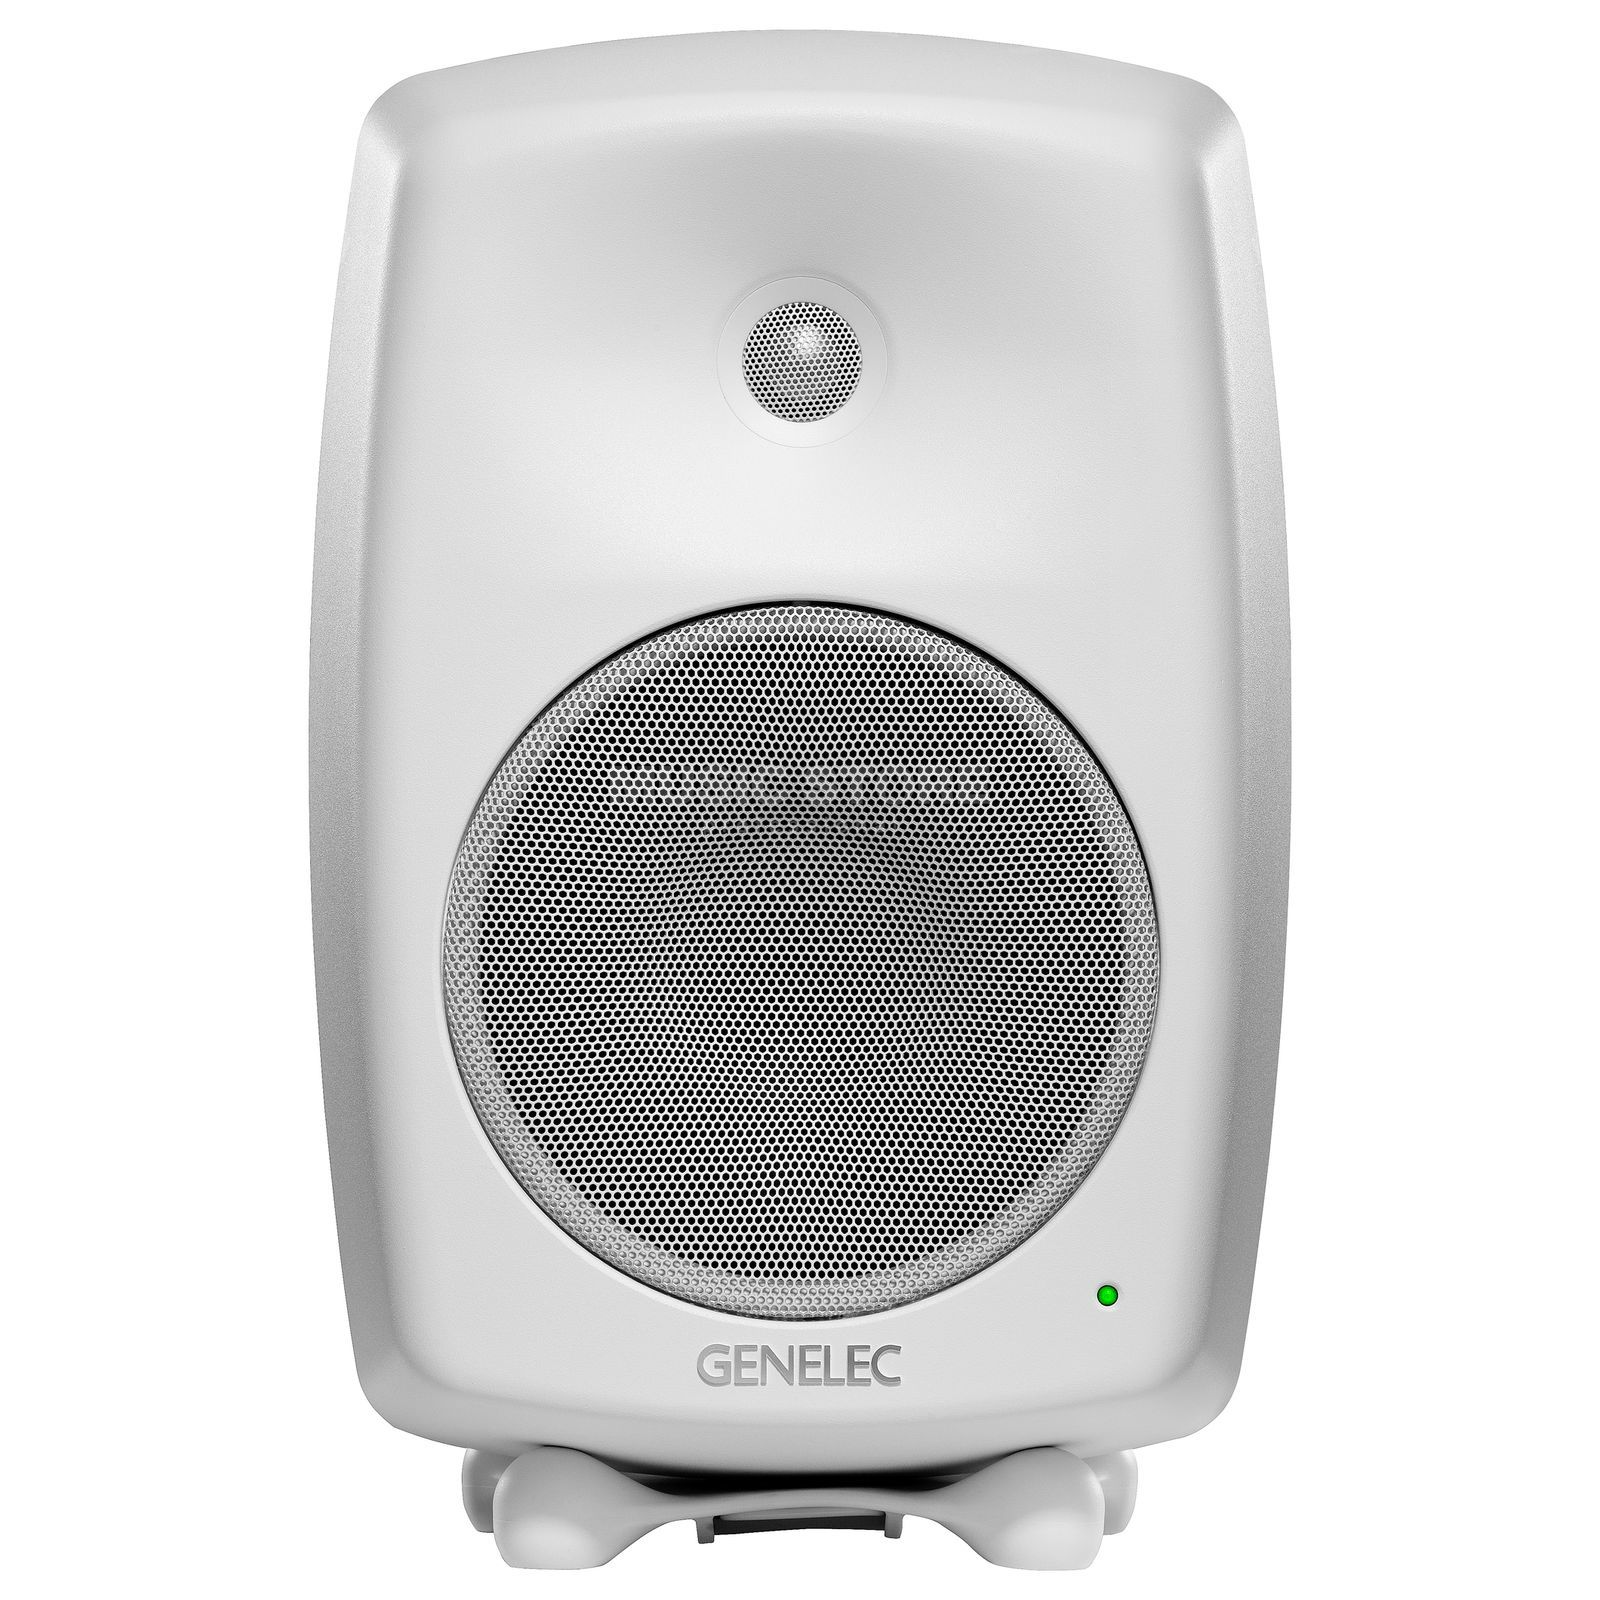 Genelec 8350 AWM DSP-Studiomonitor, weiß Product Image